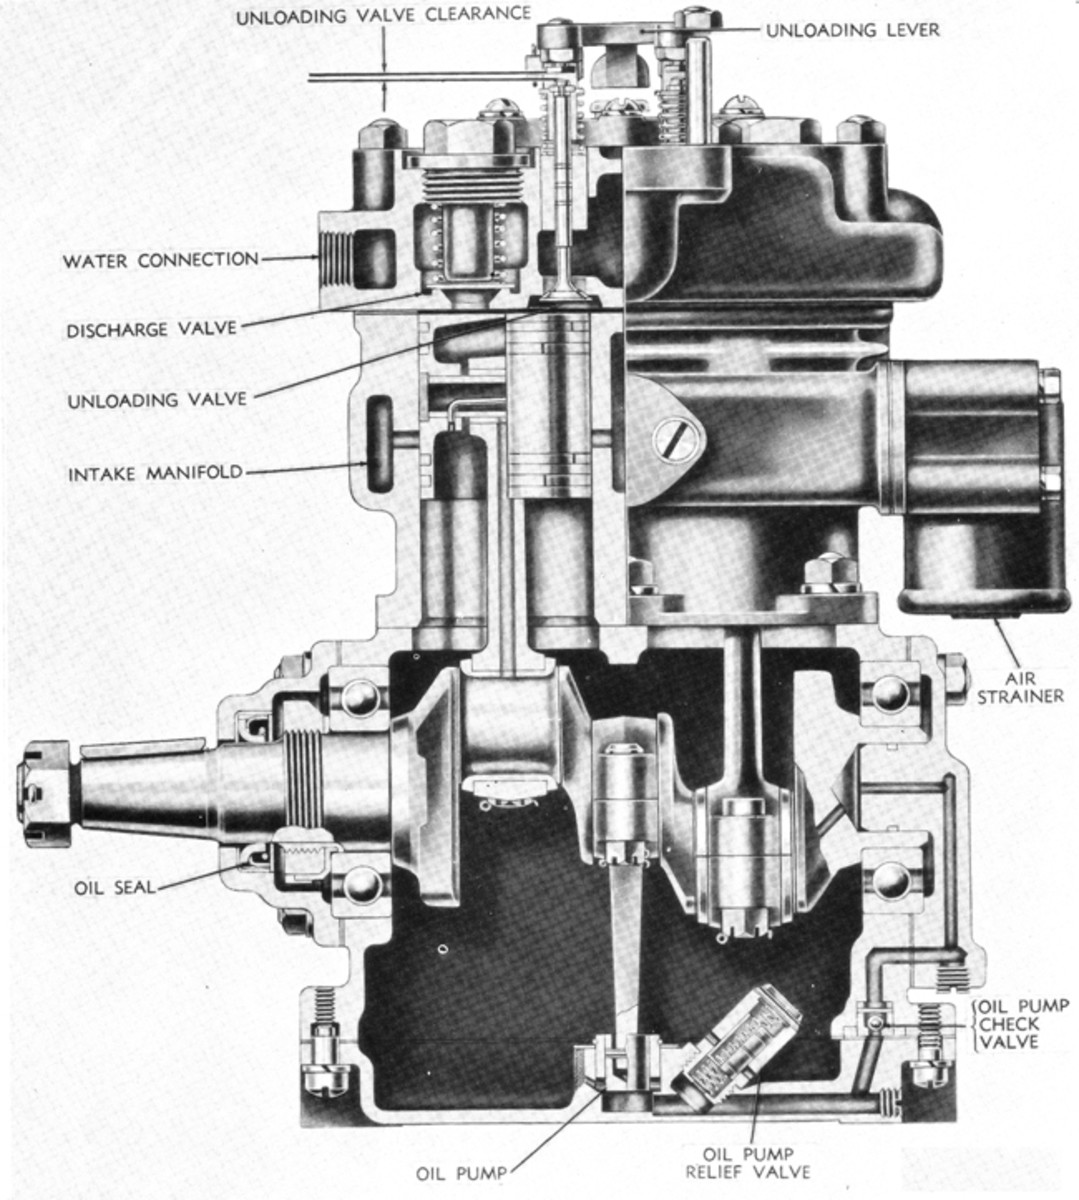 The most common air compressor types are two-cylinder models. Most are basically the same in design regardless of manufacturer. In most cases they are mounted on a vehicle's engine and belt-driven from the crankshaft pulley, though some diesel engines use gear-driven compressors. They are very much like small engines themselves, having pistons, valves and a crankshaft, and most have roller bearings. Also, most are pressure lubricated by oil from the vehicle's engine, though some have additional internal oil pumps. A few vintage vehicles have compressors with self-contained oil supplies, so their crankcases must be checked, kept filled to the correct level, and changed separately from the engine oil.